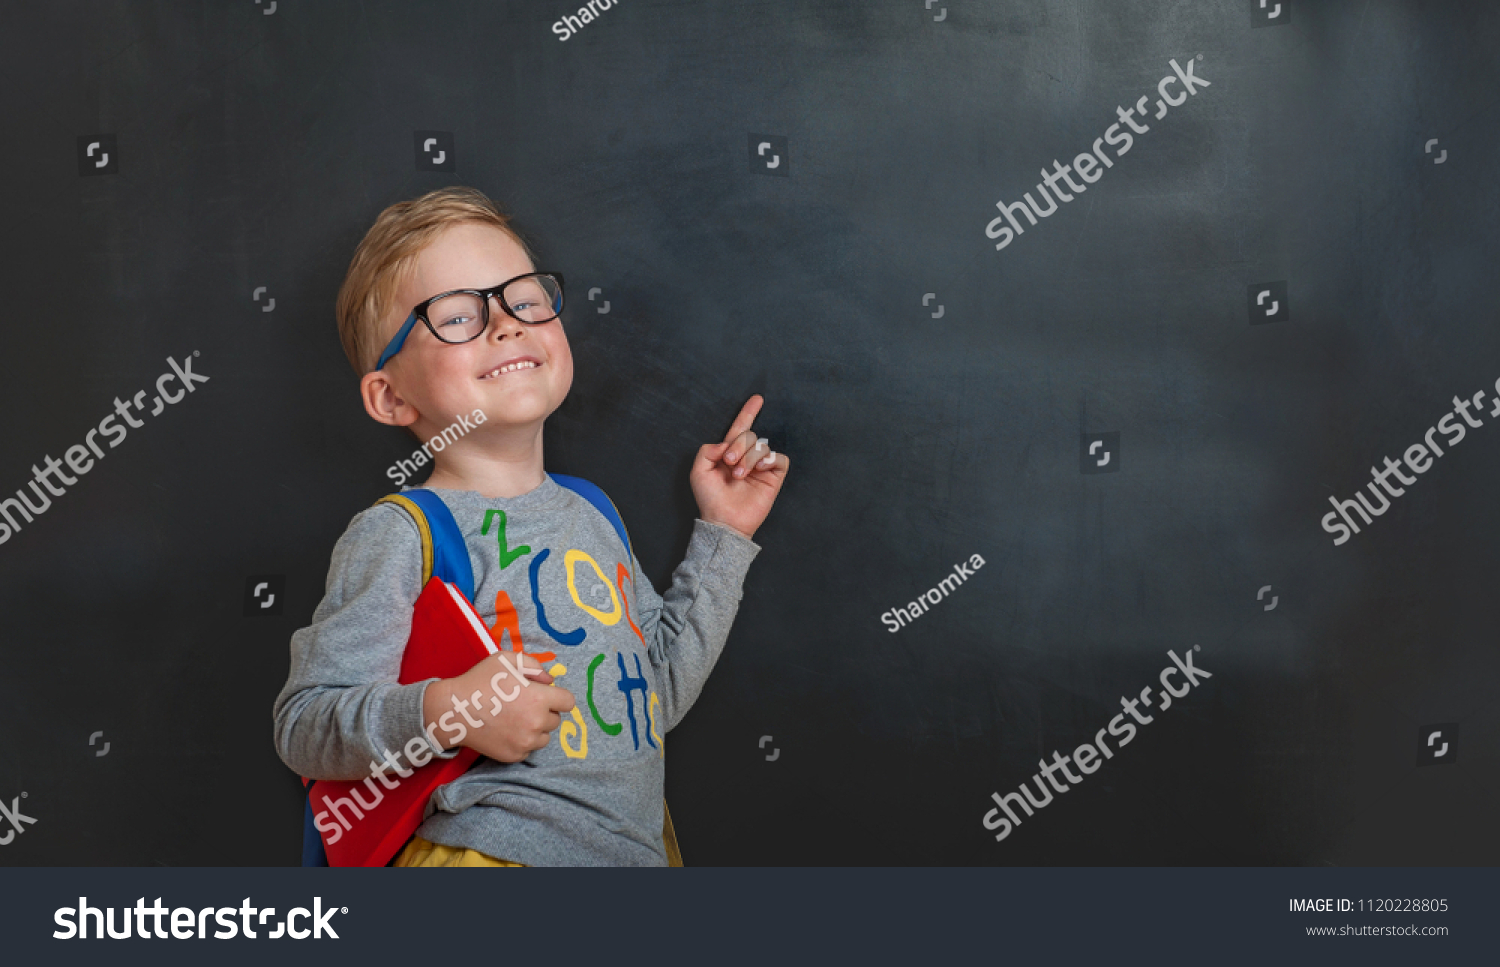 Back to school. Funny little boy in glasses pointing up on blackboard. Child from elementary school with book and bag. Education. #1120228805